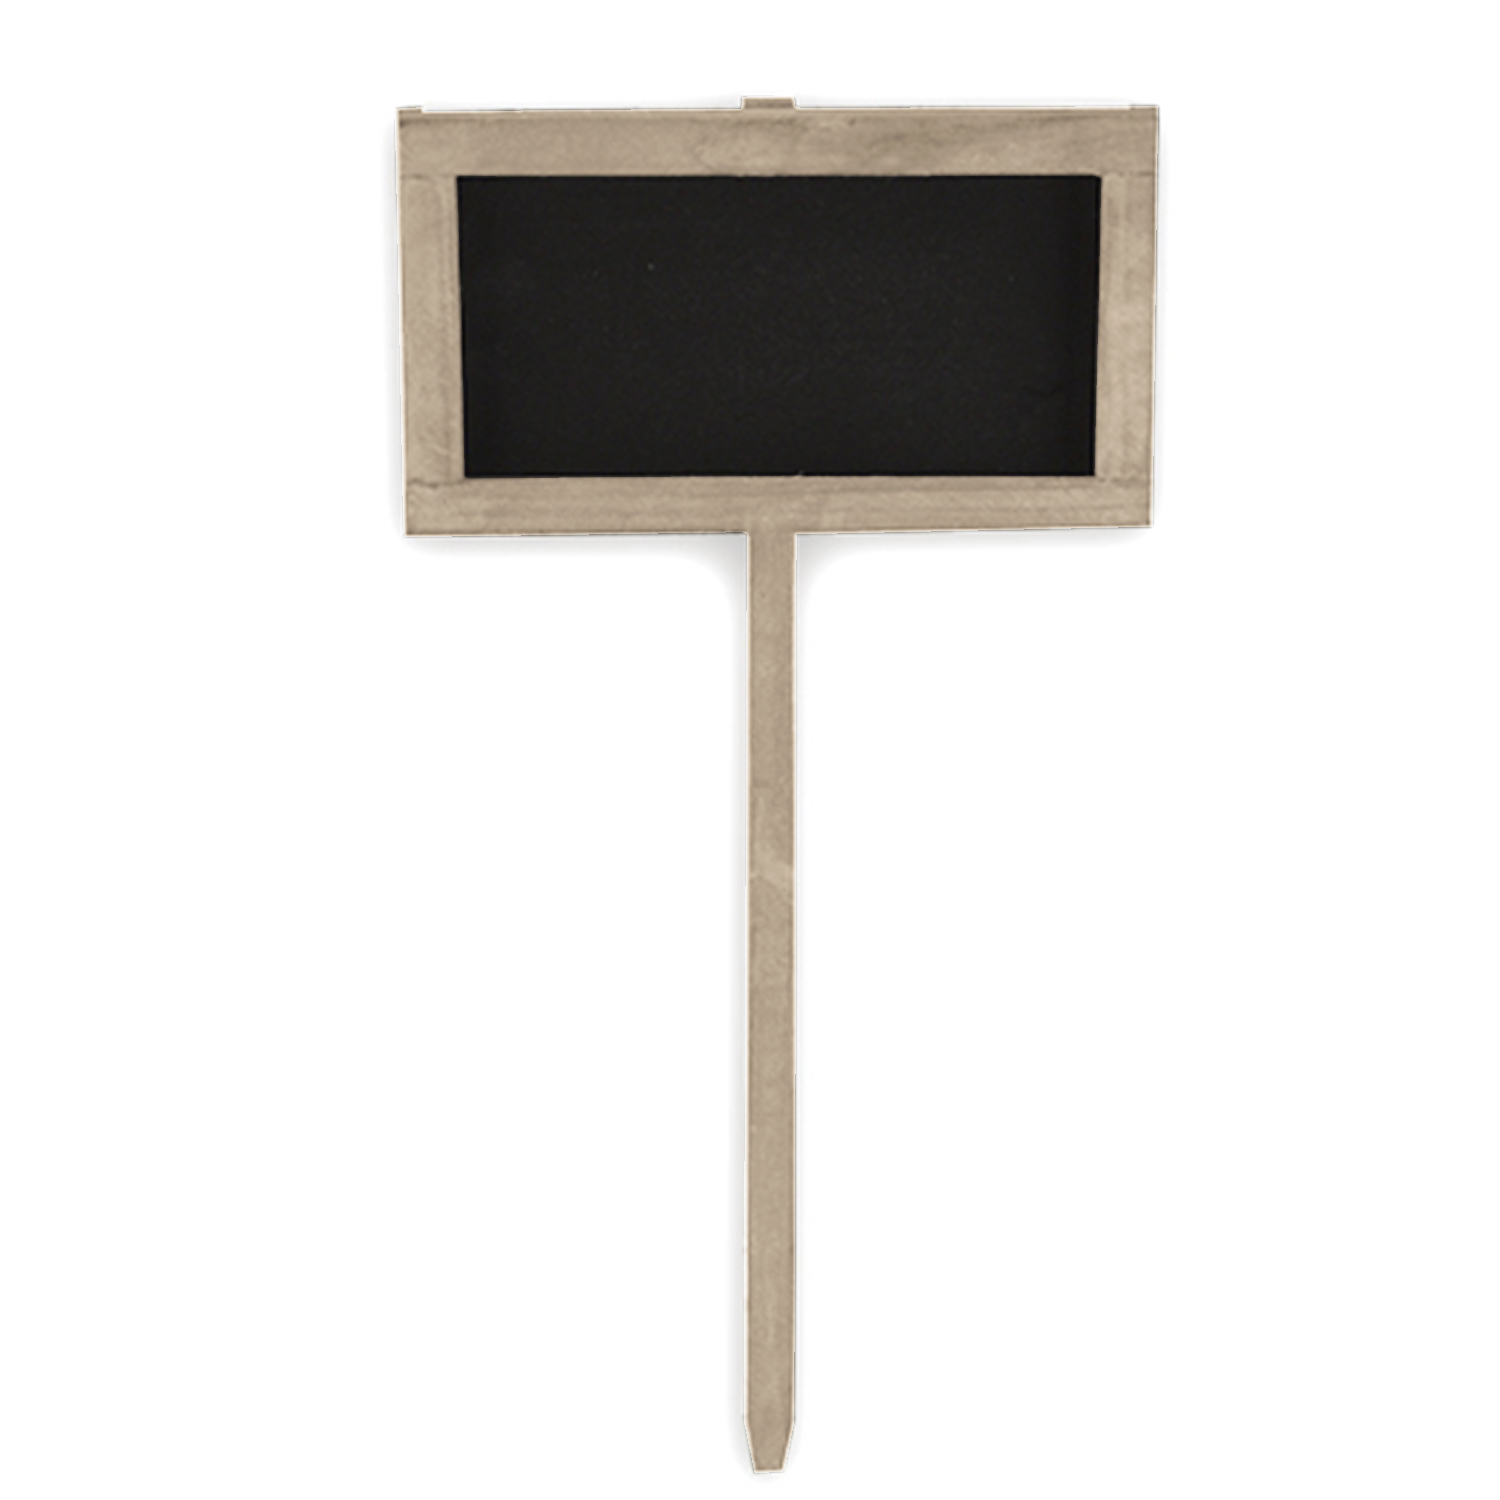 Medium Product Display Chalkboard Sign 5in